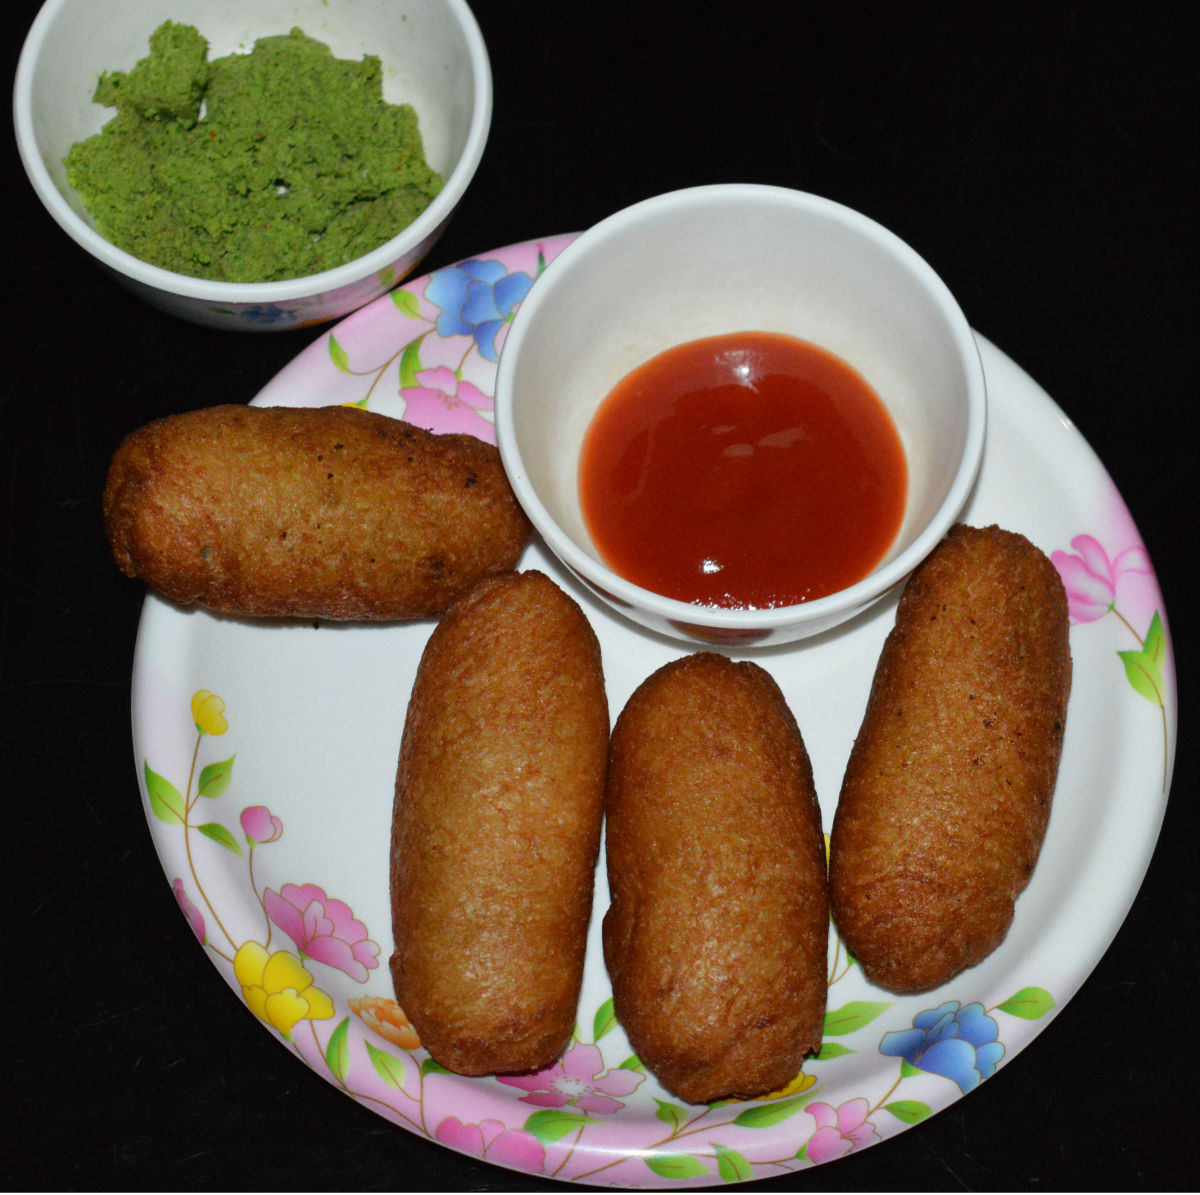 Serve them on a plate with tomato sauce and green chutney. Enjoy the taste!